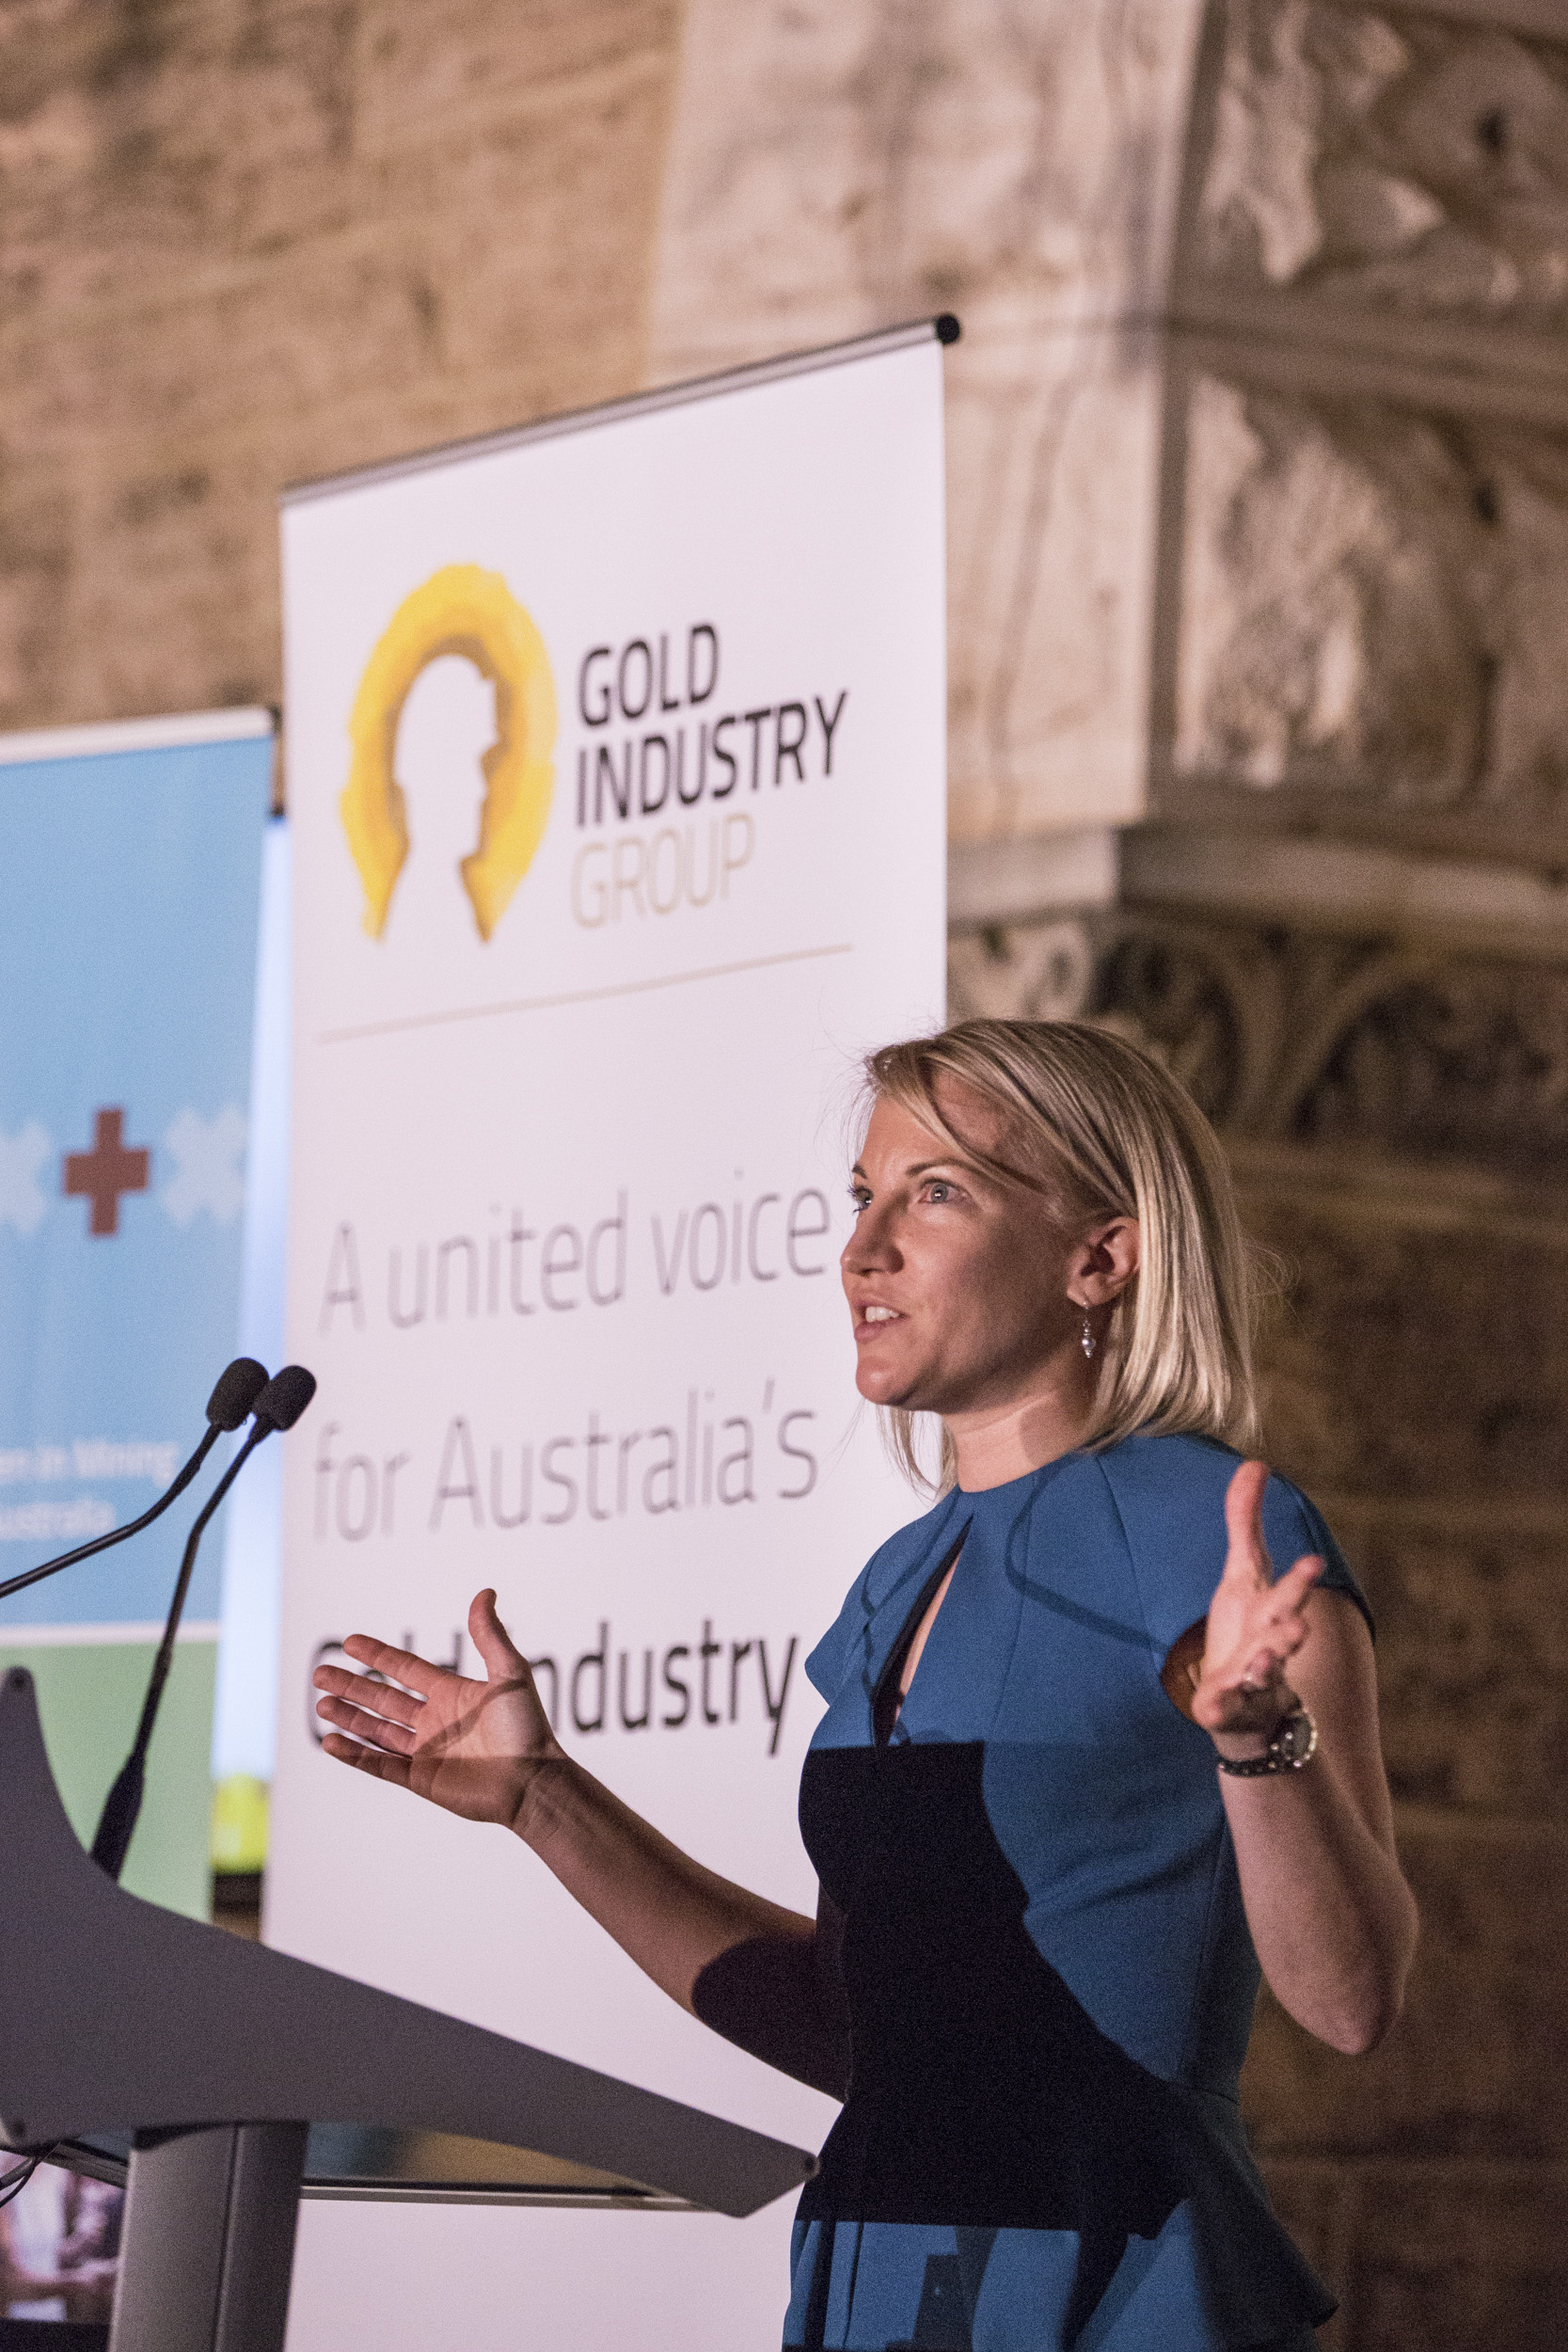 Kelly Carter presenting at the Gold Industry Group's Women in Gold event at The Perth Mint